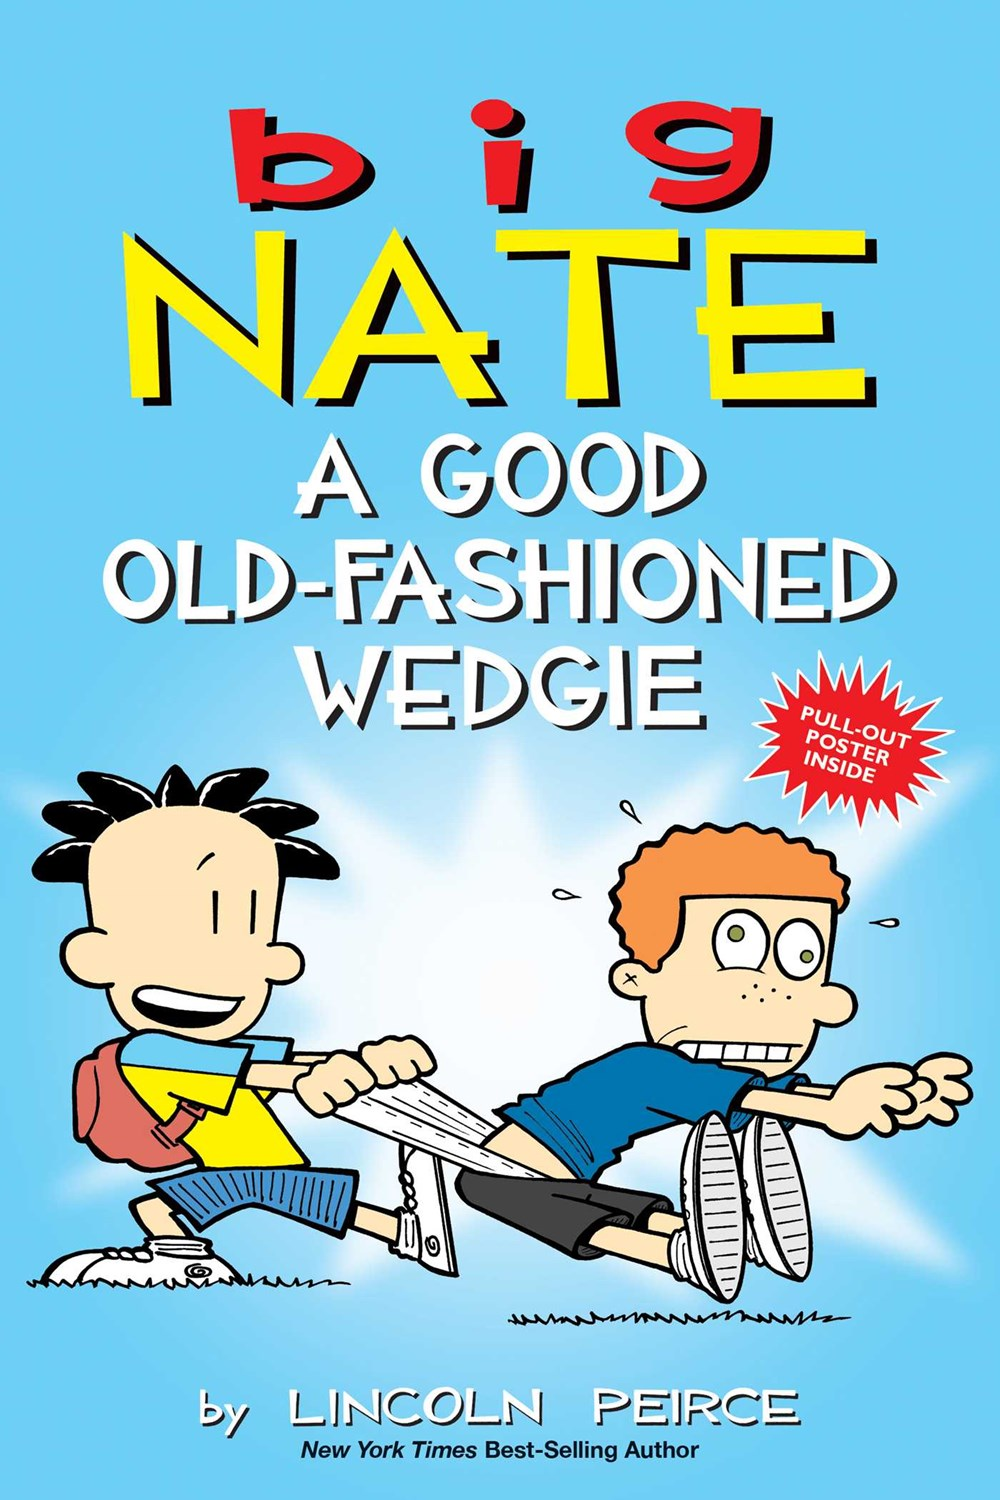 A Good Old-Fashioned Wedgie